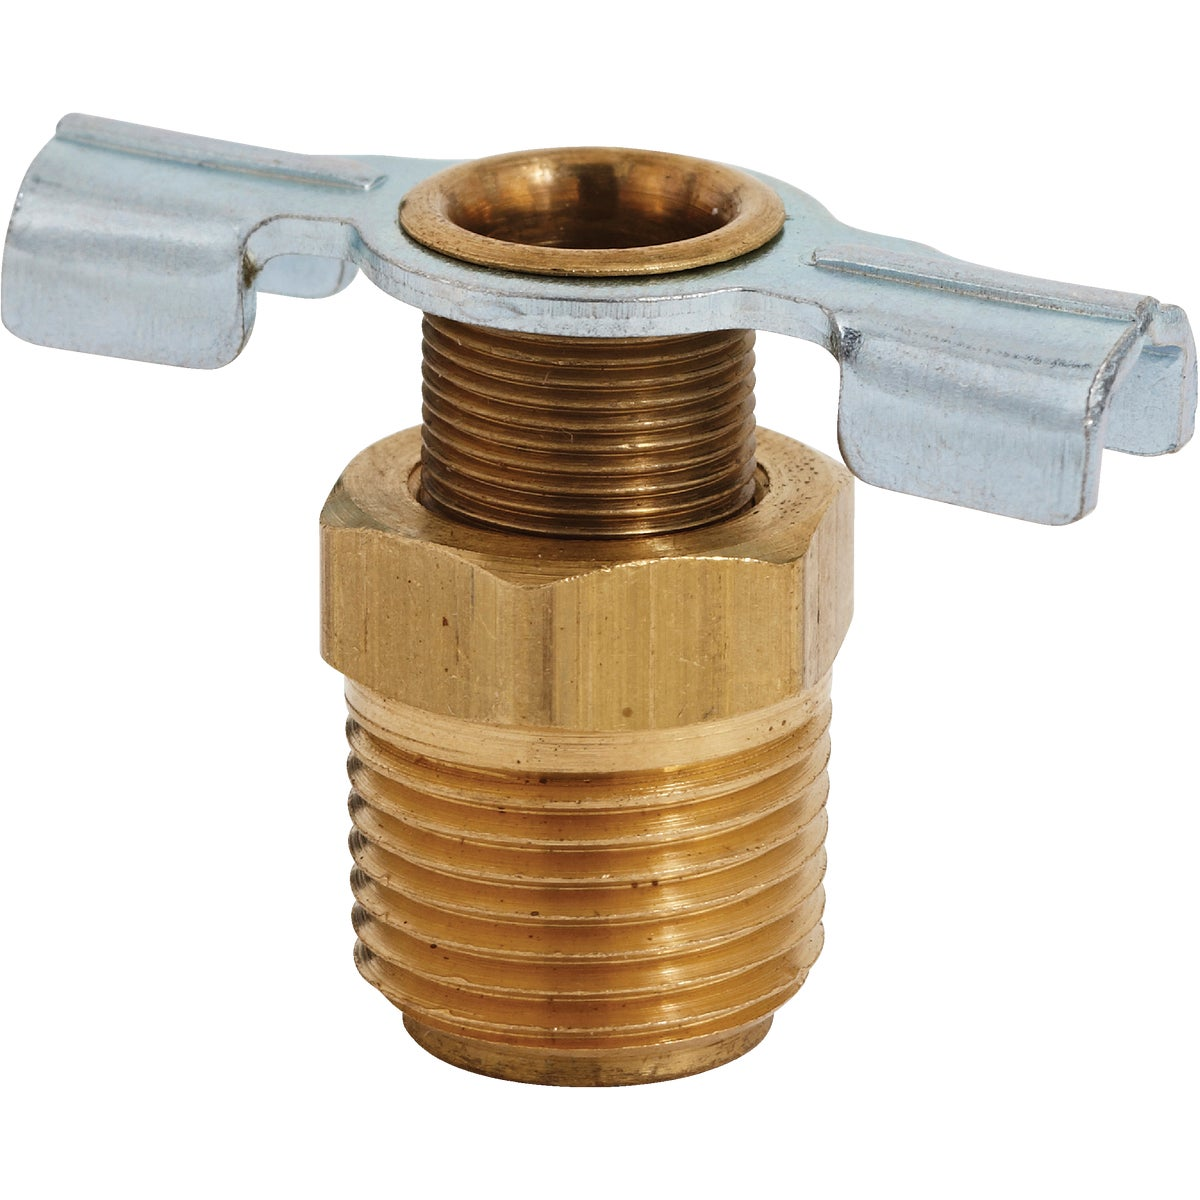 "3/8"" BRASS DRAIN COCK - S-614-6 by Milton Ind/ Incom"